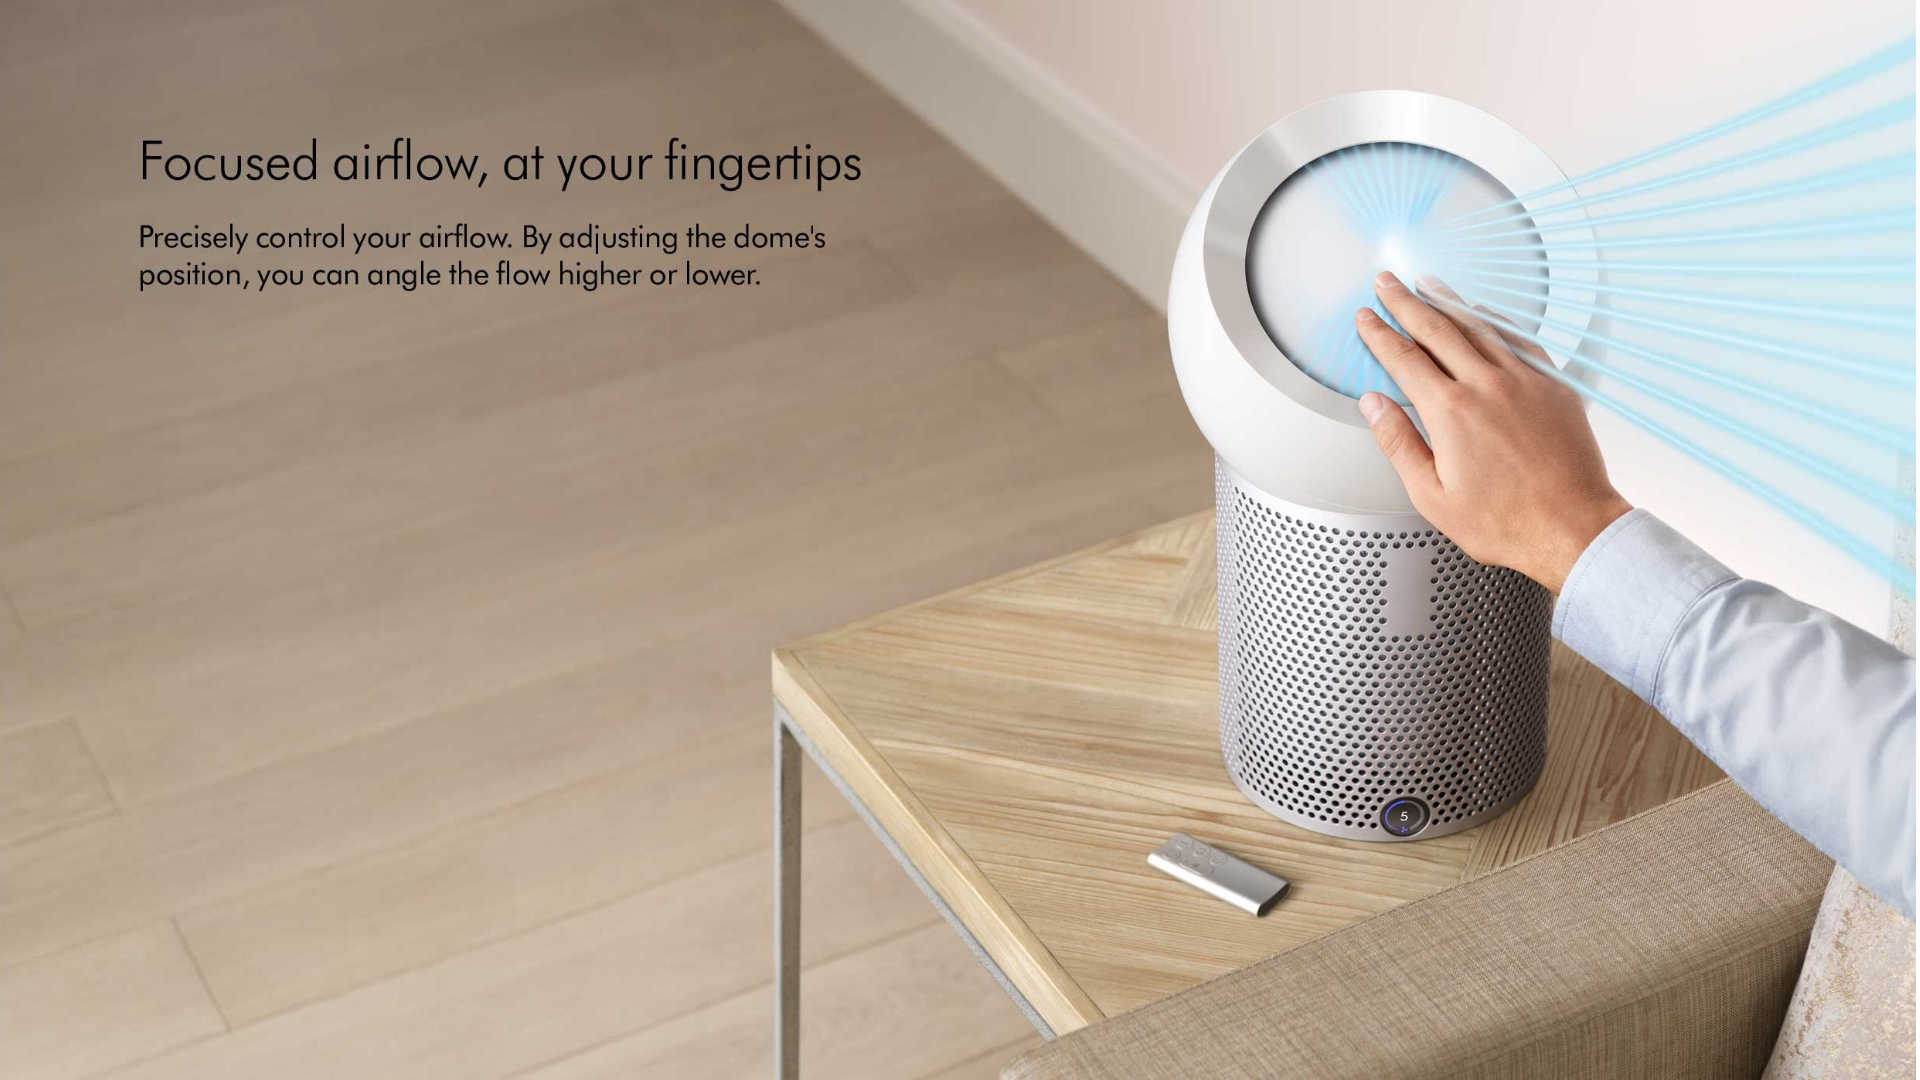 direct the air flow at you finger tips where you want it